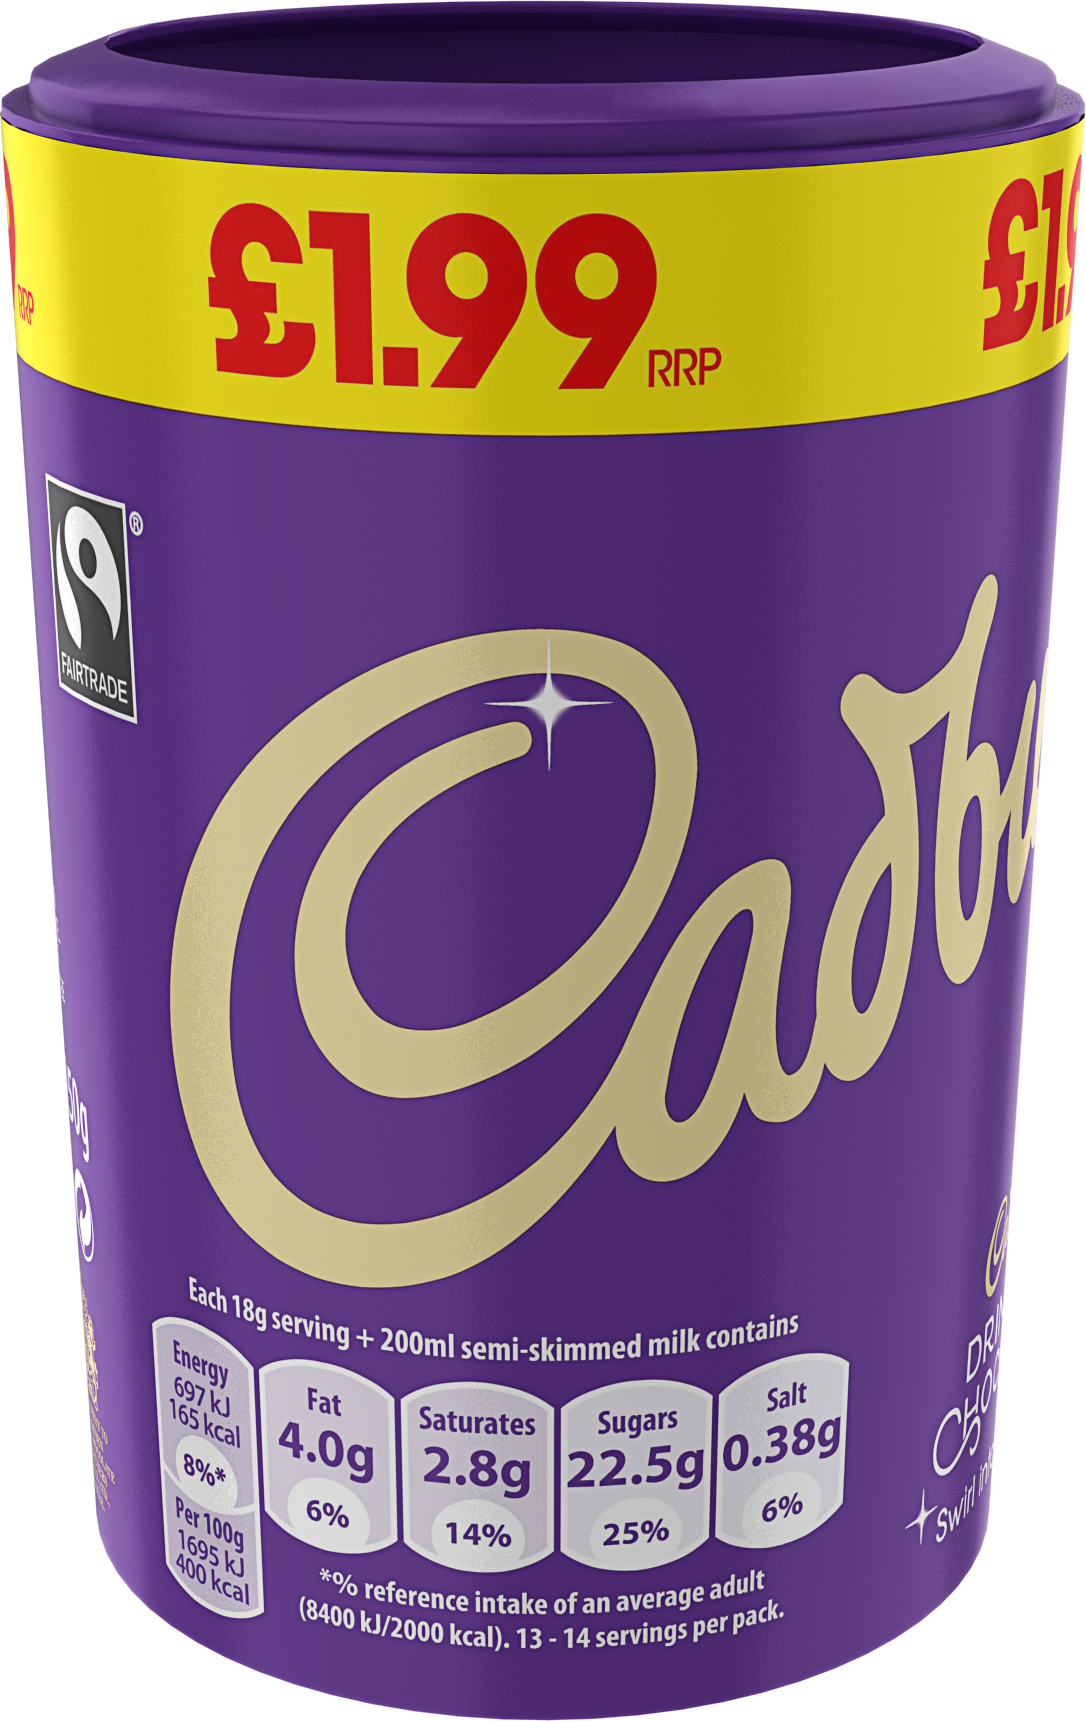 cadbury launches a new product Product launches fail to entice consumers of trying something new, only 28% can recall any product launch bring back the mcrib and cadbury's.